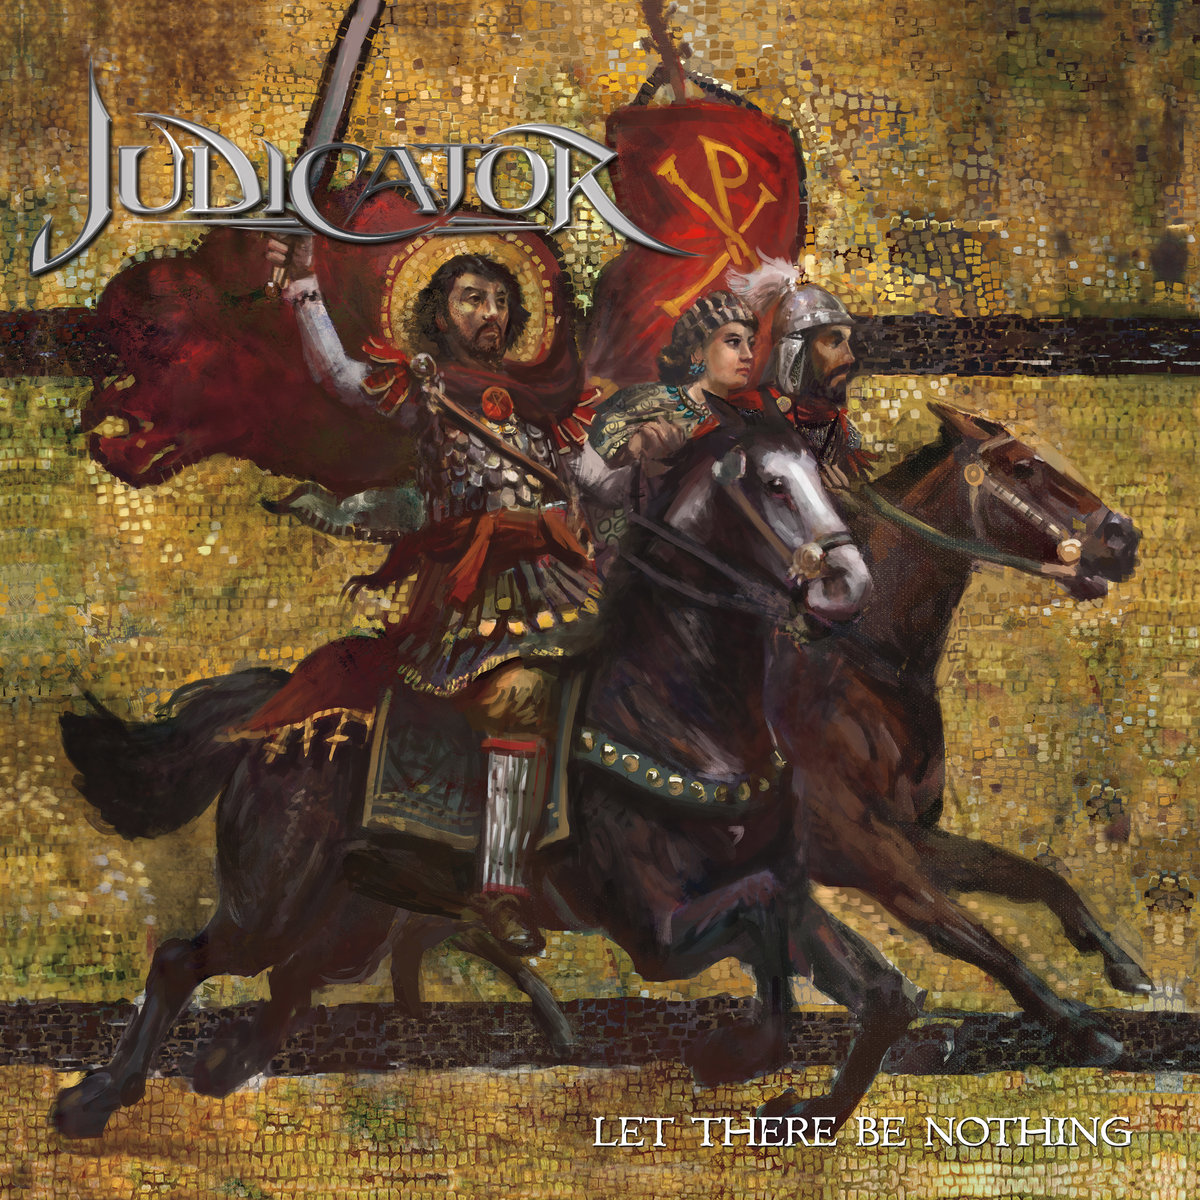 judicator Let There Be Nothing